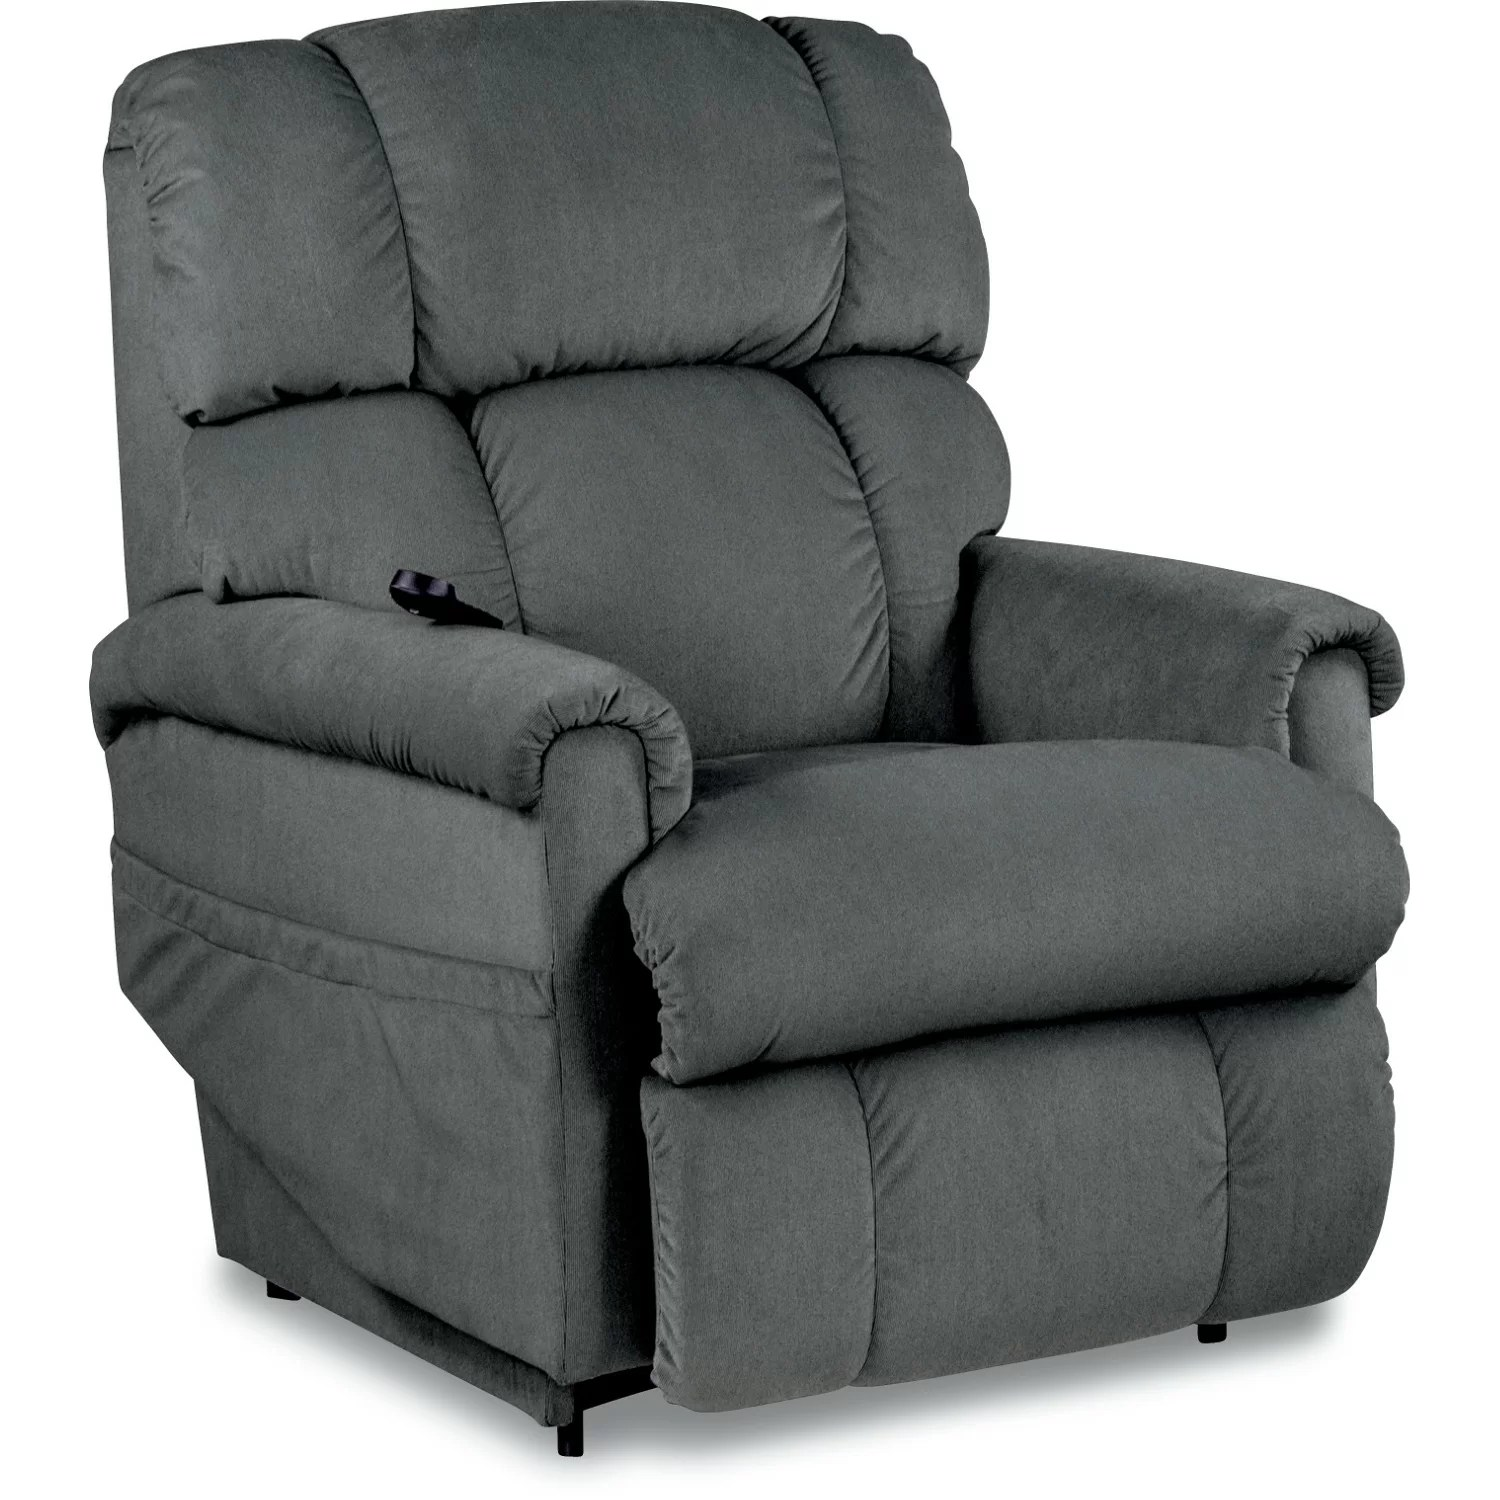 lazy boy lift chairs leather hanging chair swing la z pinnacle luxury power recliner and reviews